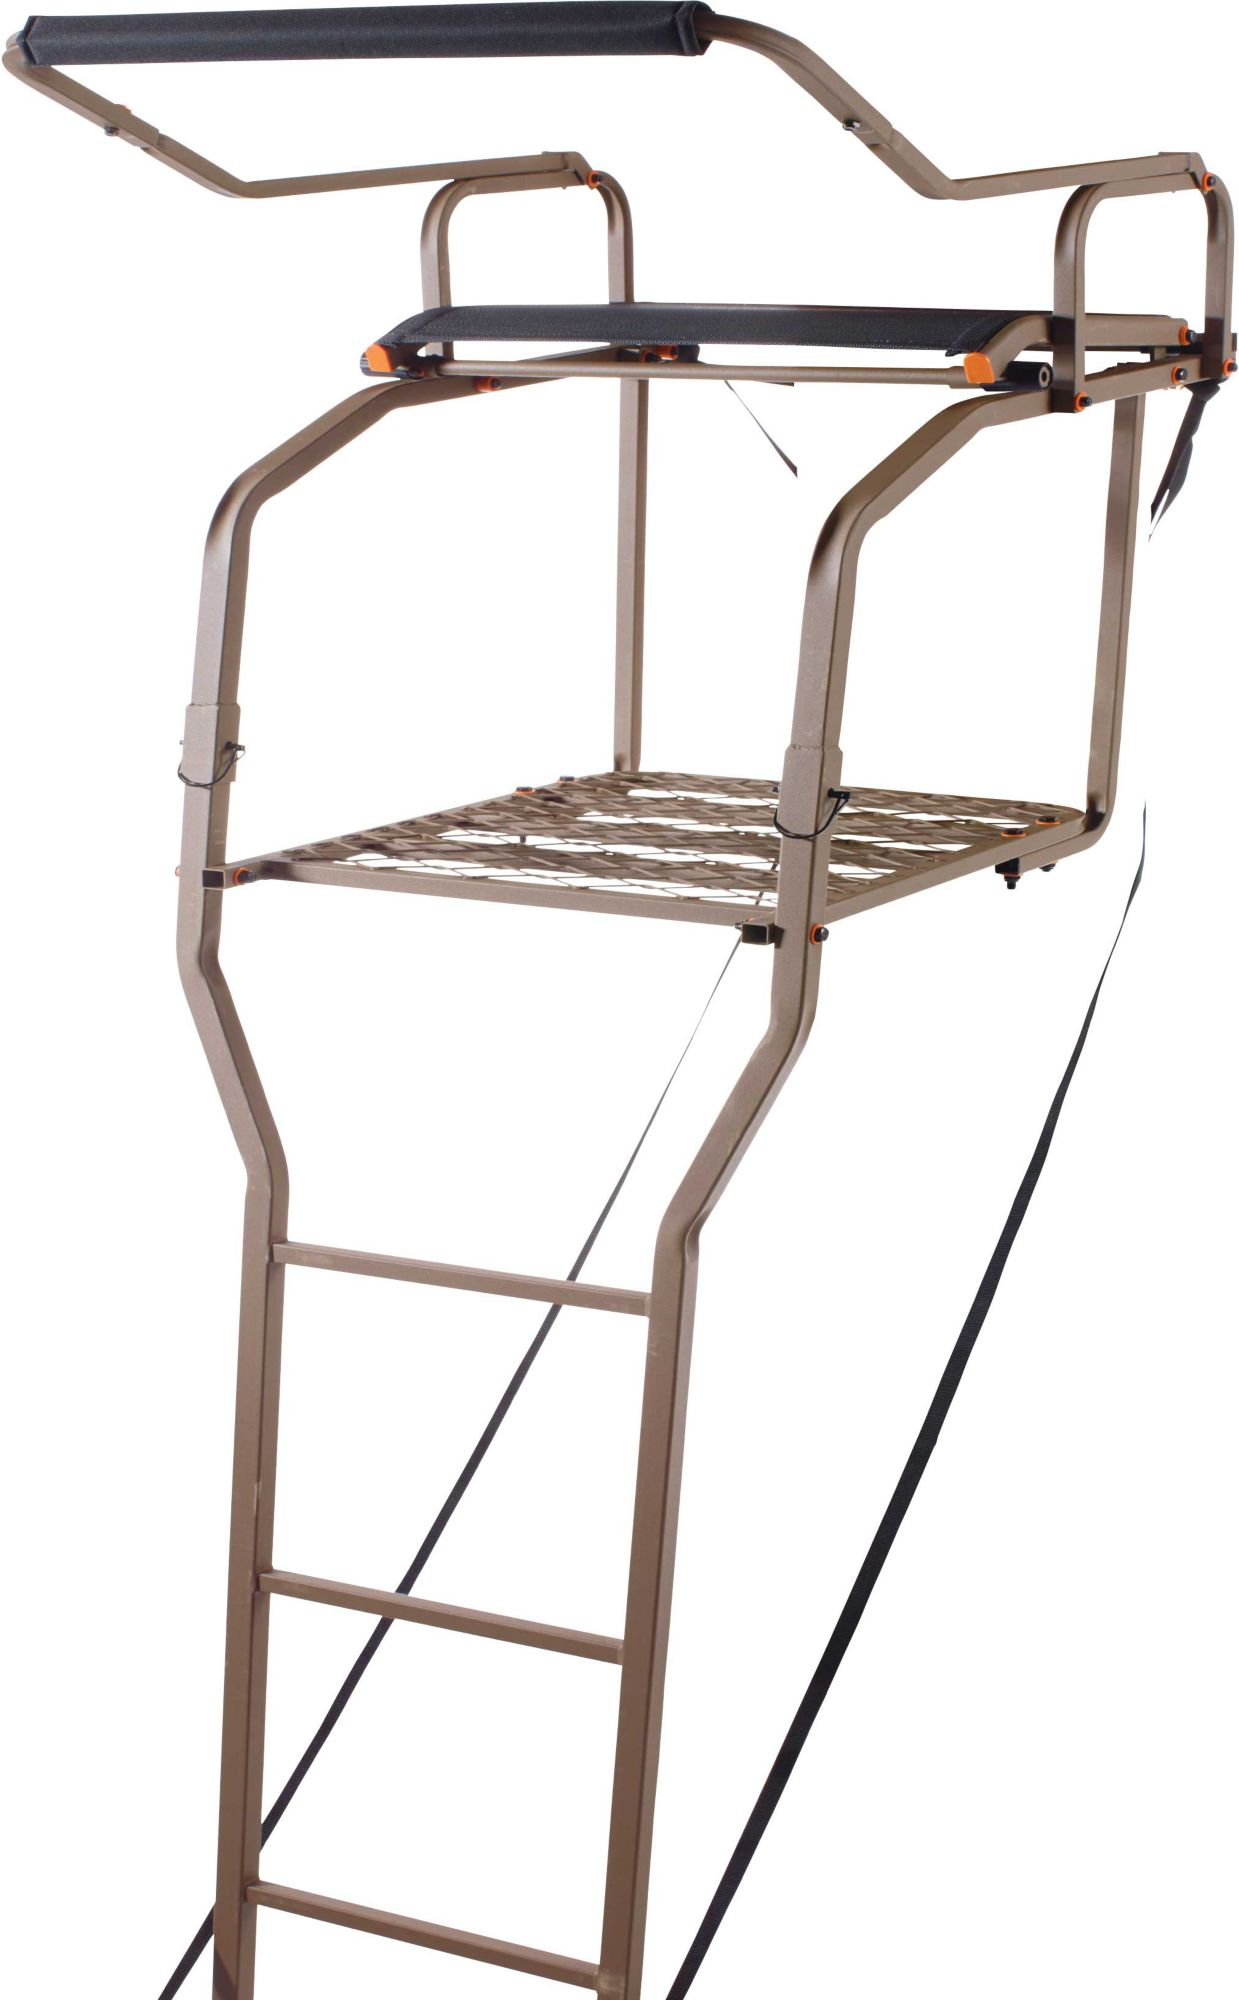 Field & Stream Lookout Deluxe 15′ Ladder Stand – Ergo Mesh Seat